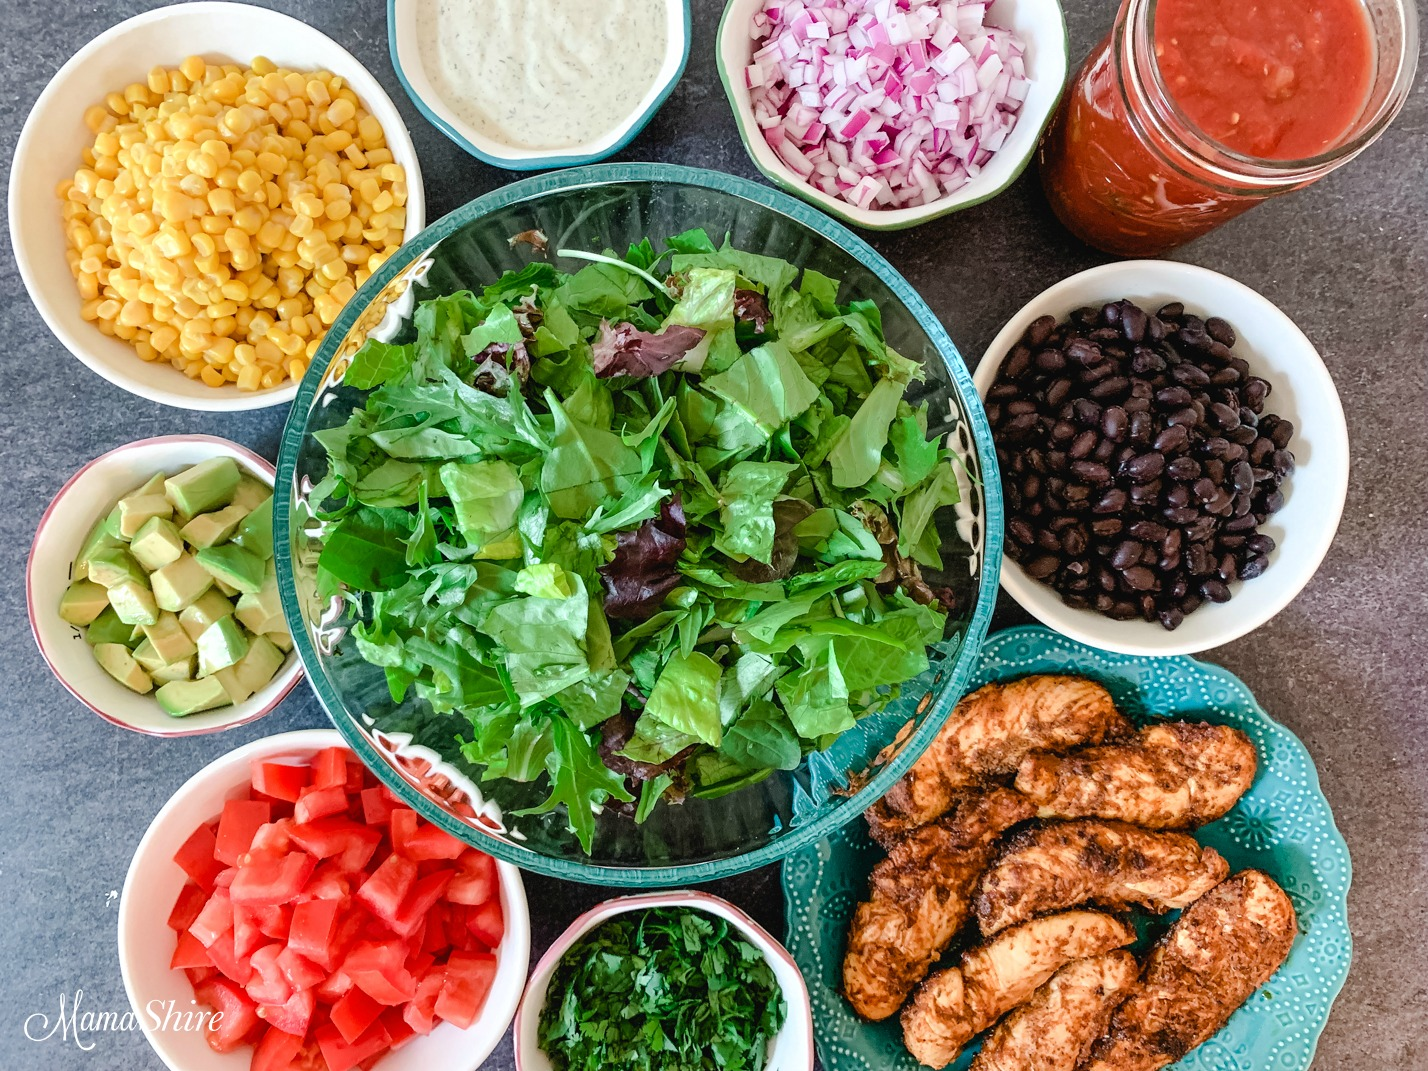 Ingredients for a healthy taco salad made with chicken, corn, tomatoes, black beans, avocados, cilantro, and red onions.